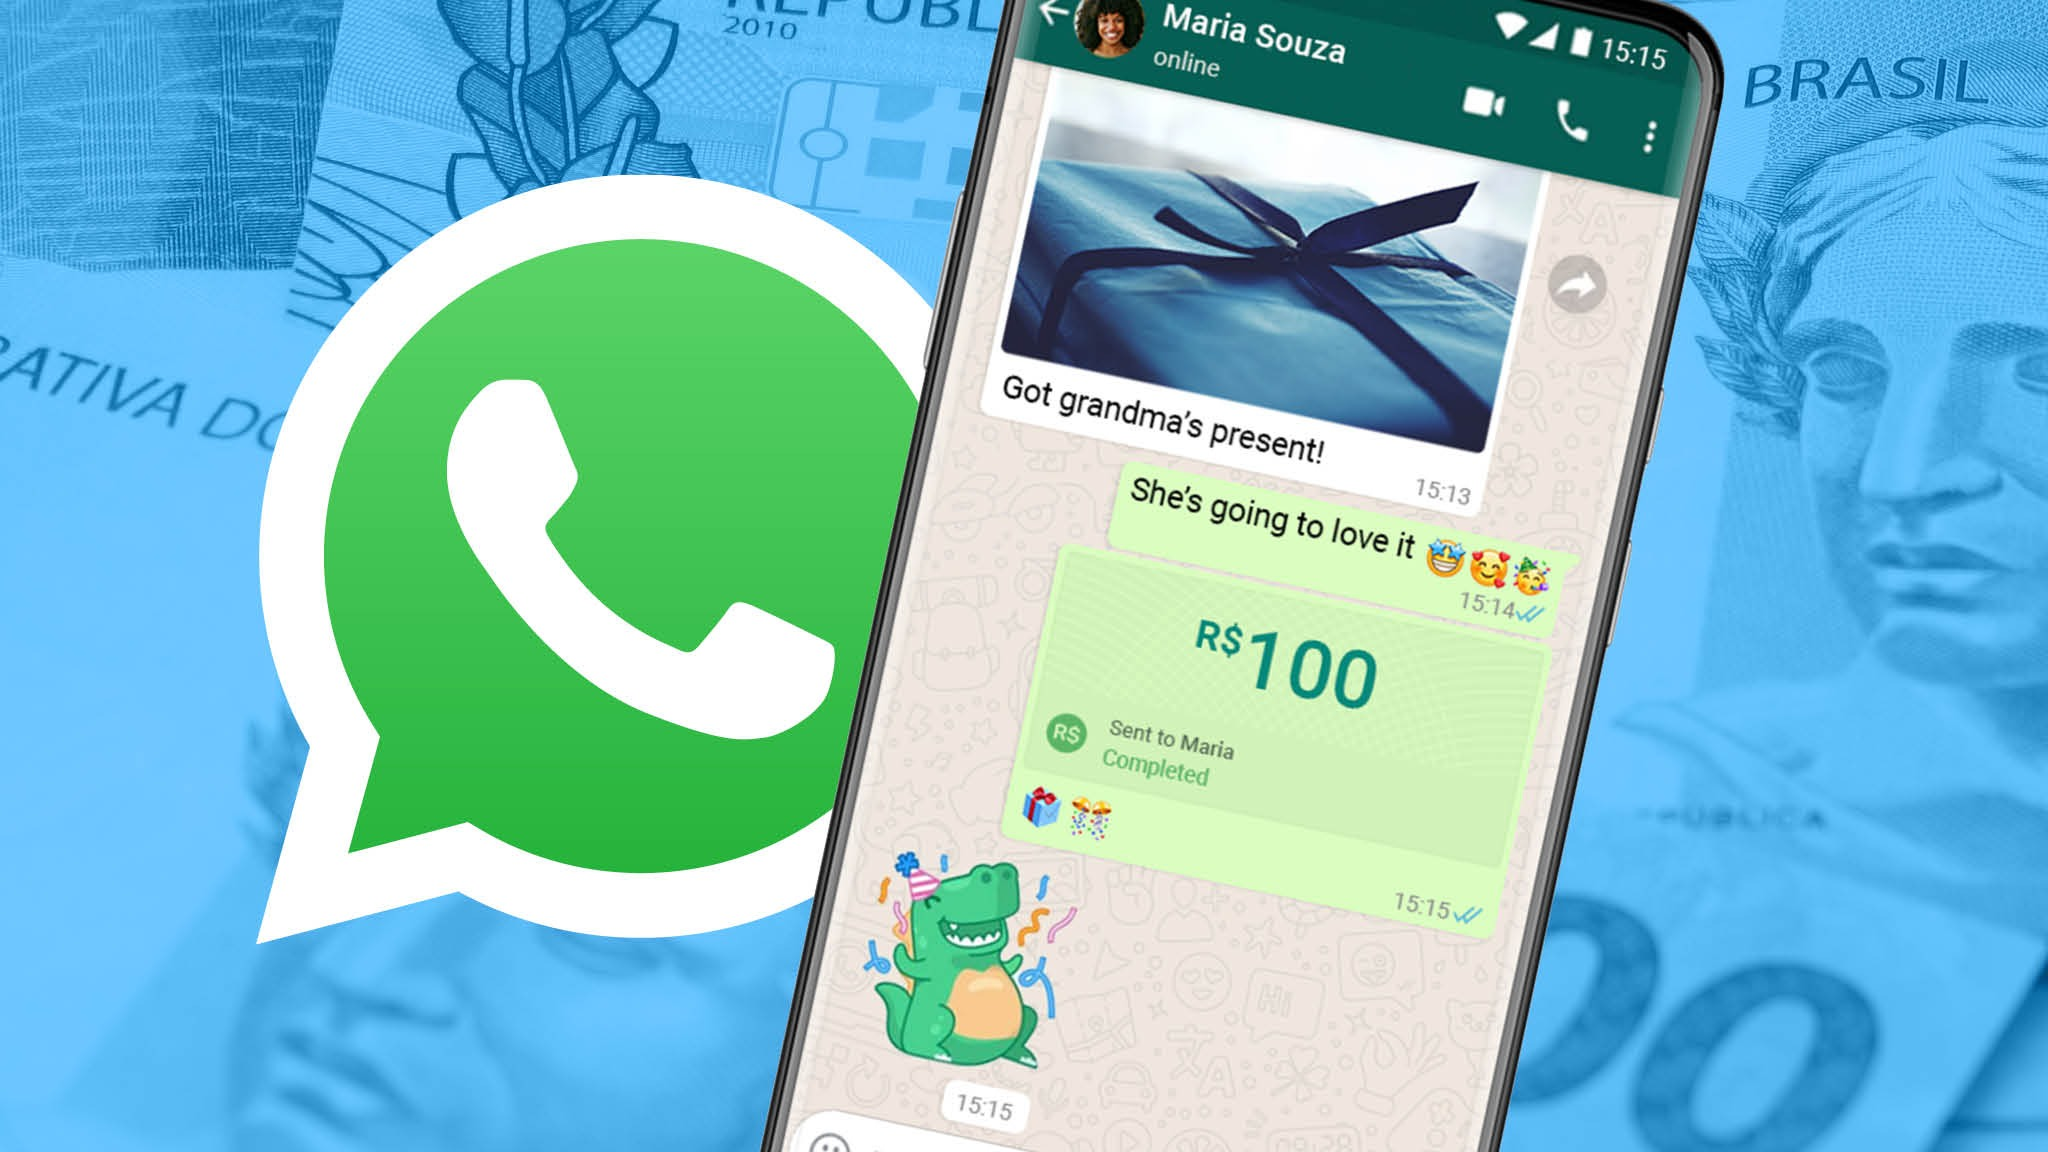 Digital WhatsApp Payments for SMEs launched, Pilots in Brazil